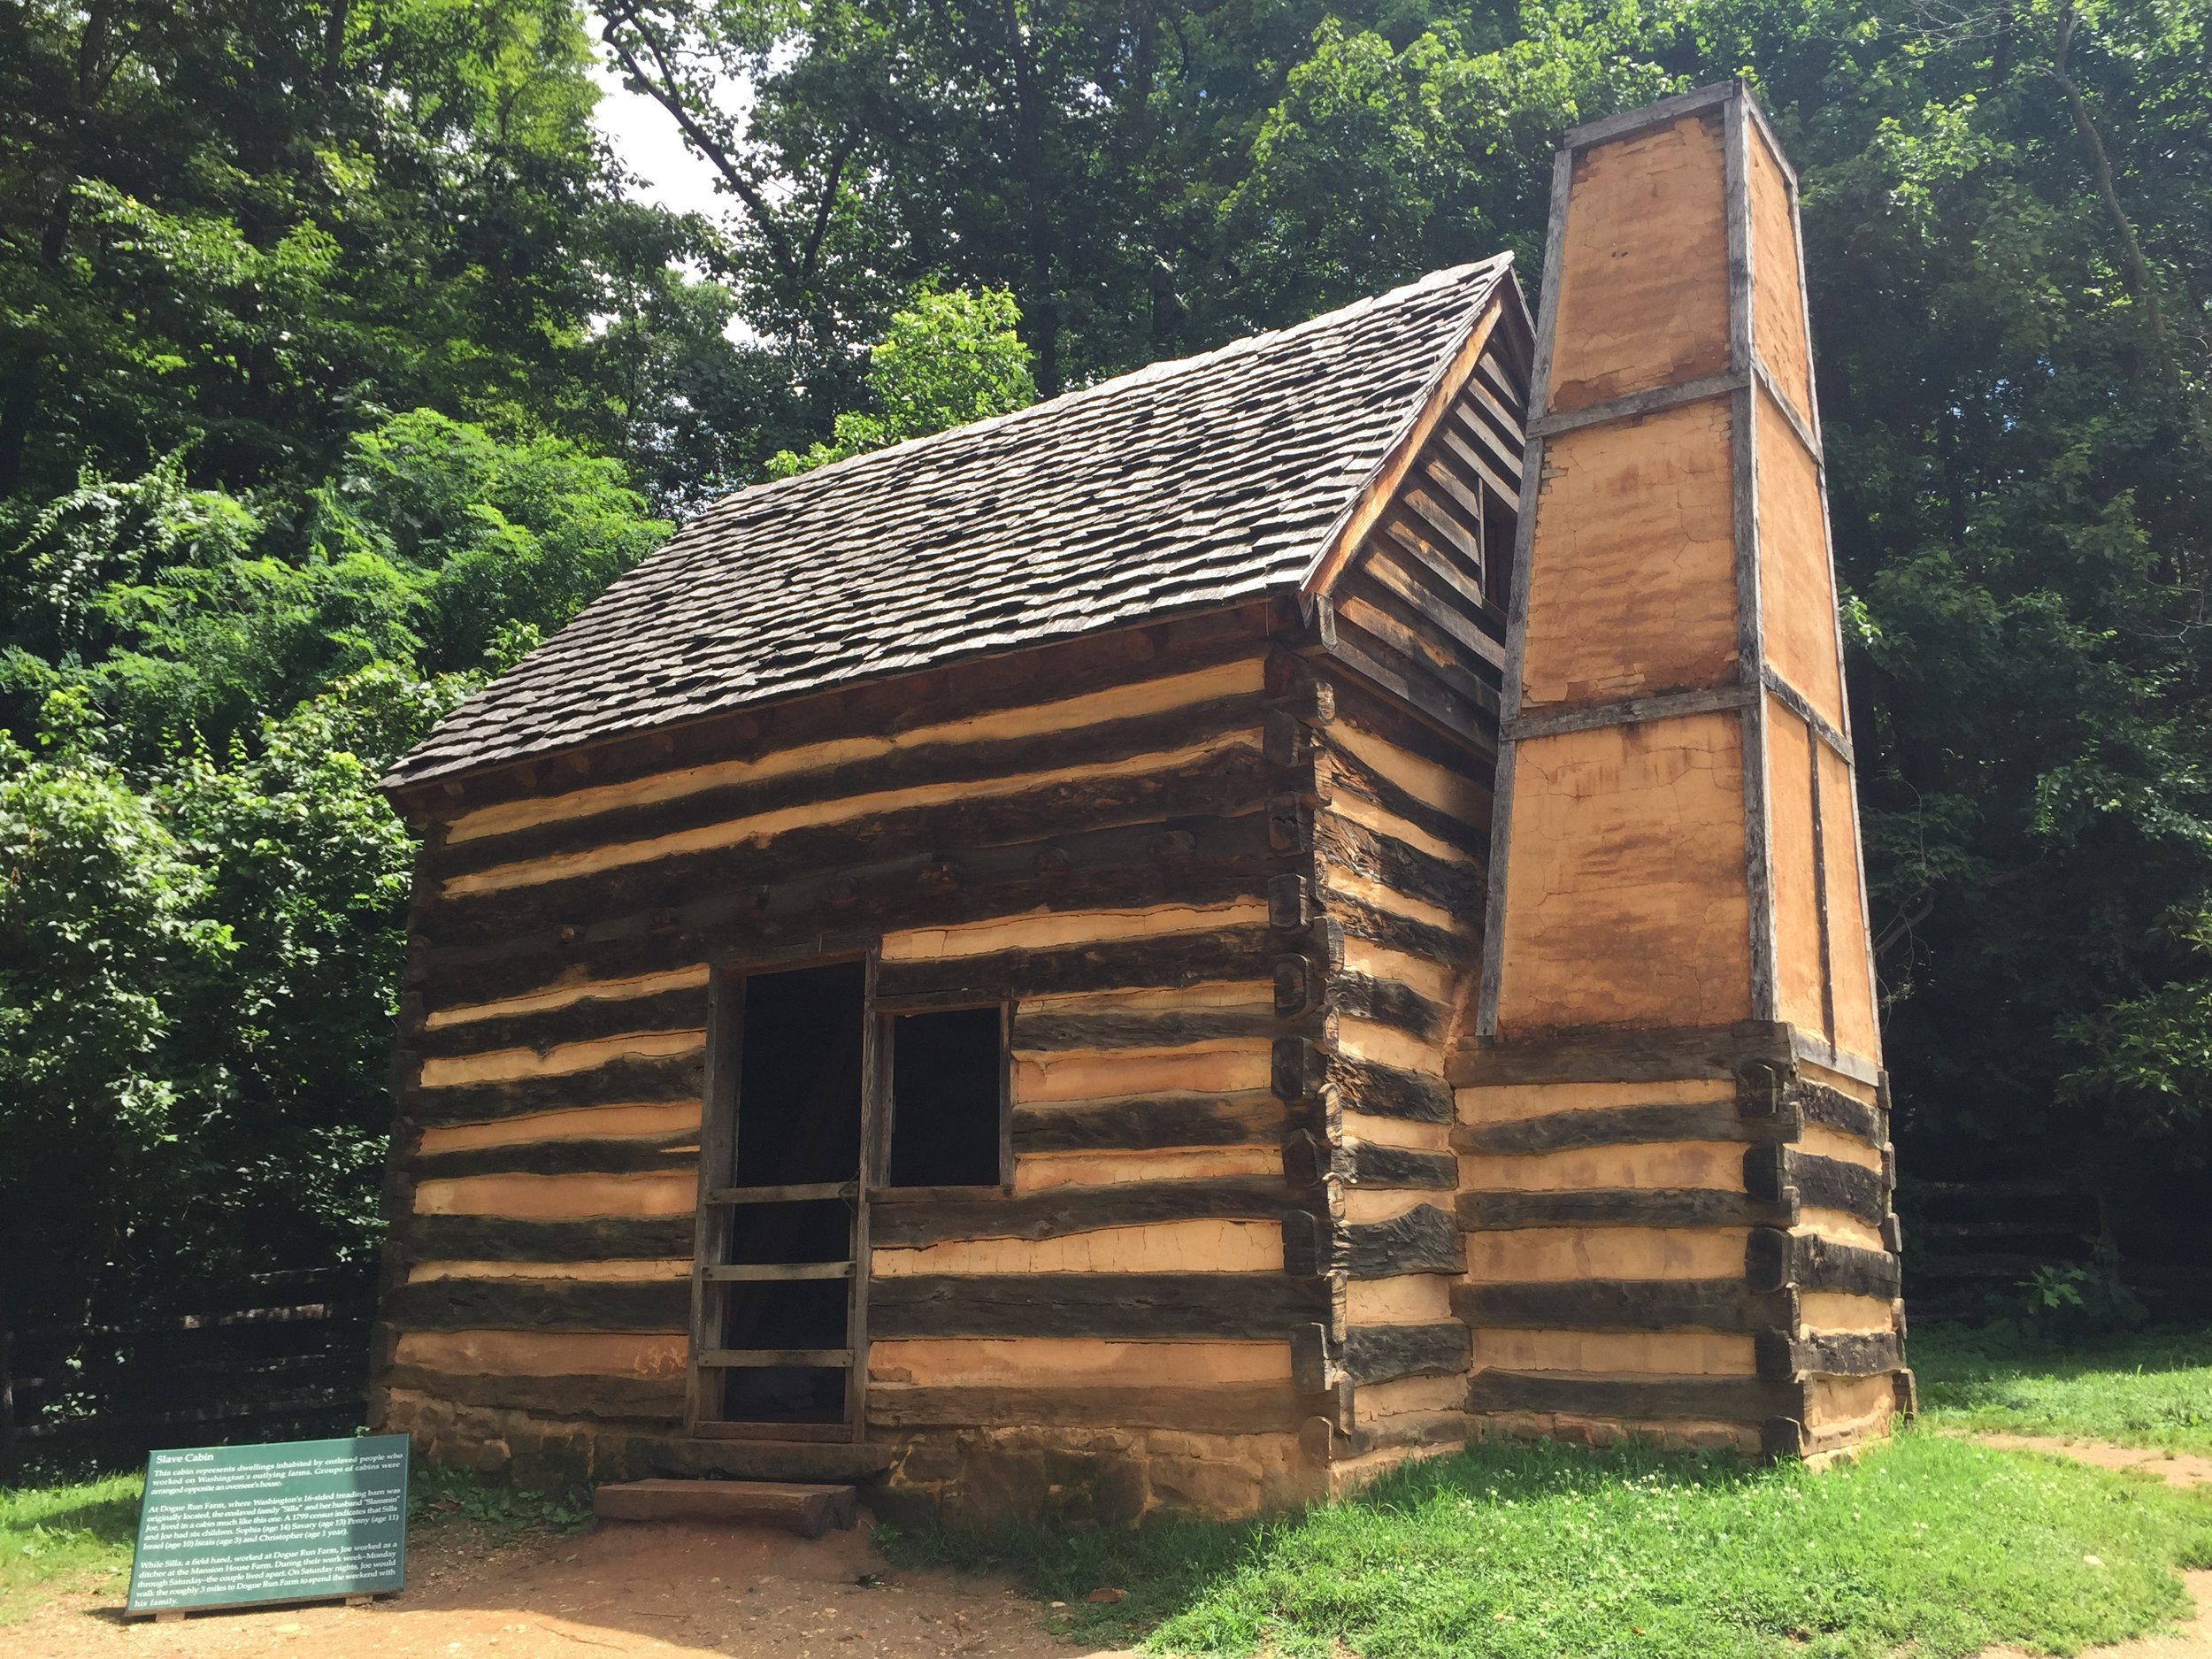 A reconstructed slave cabin at Mount Vernon. The sign near the cabin describes how a family of eight lived in a cabin like this one.